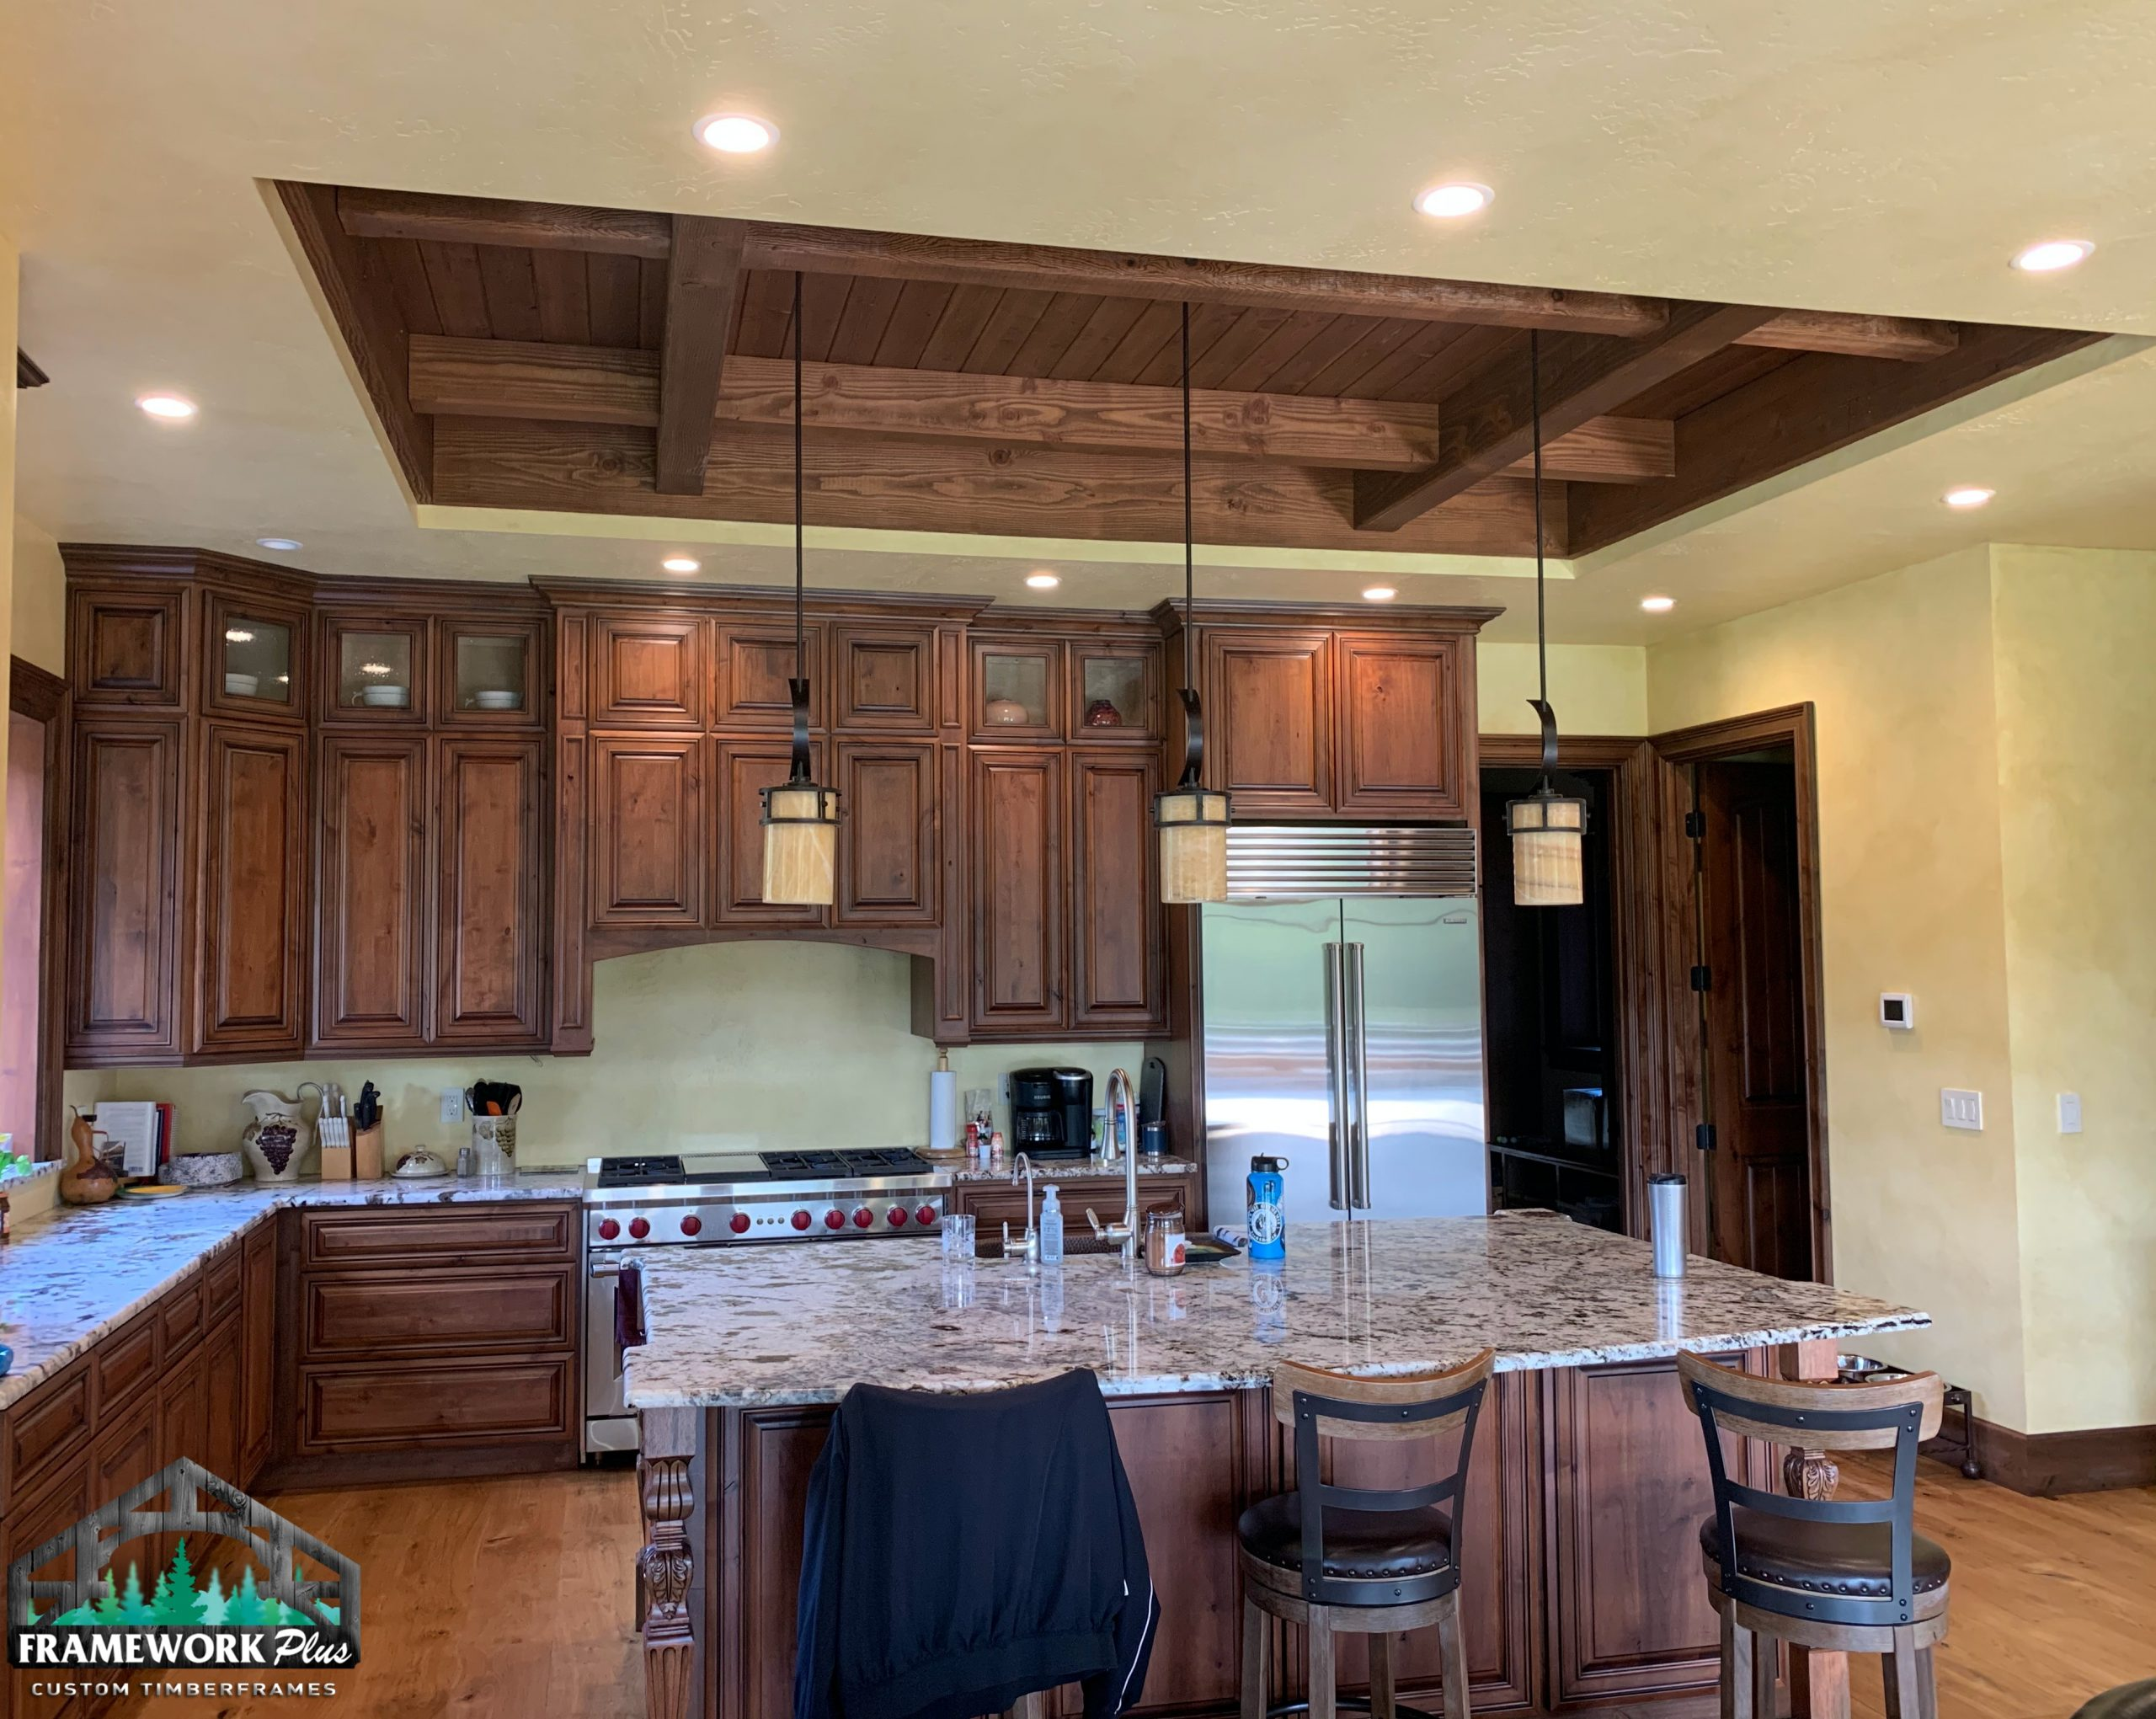 Hood River, OR Hybrid Home Kitchen Interior Build In